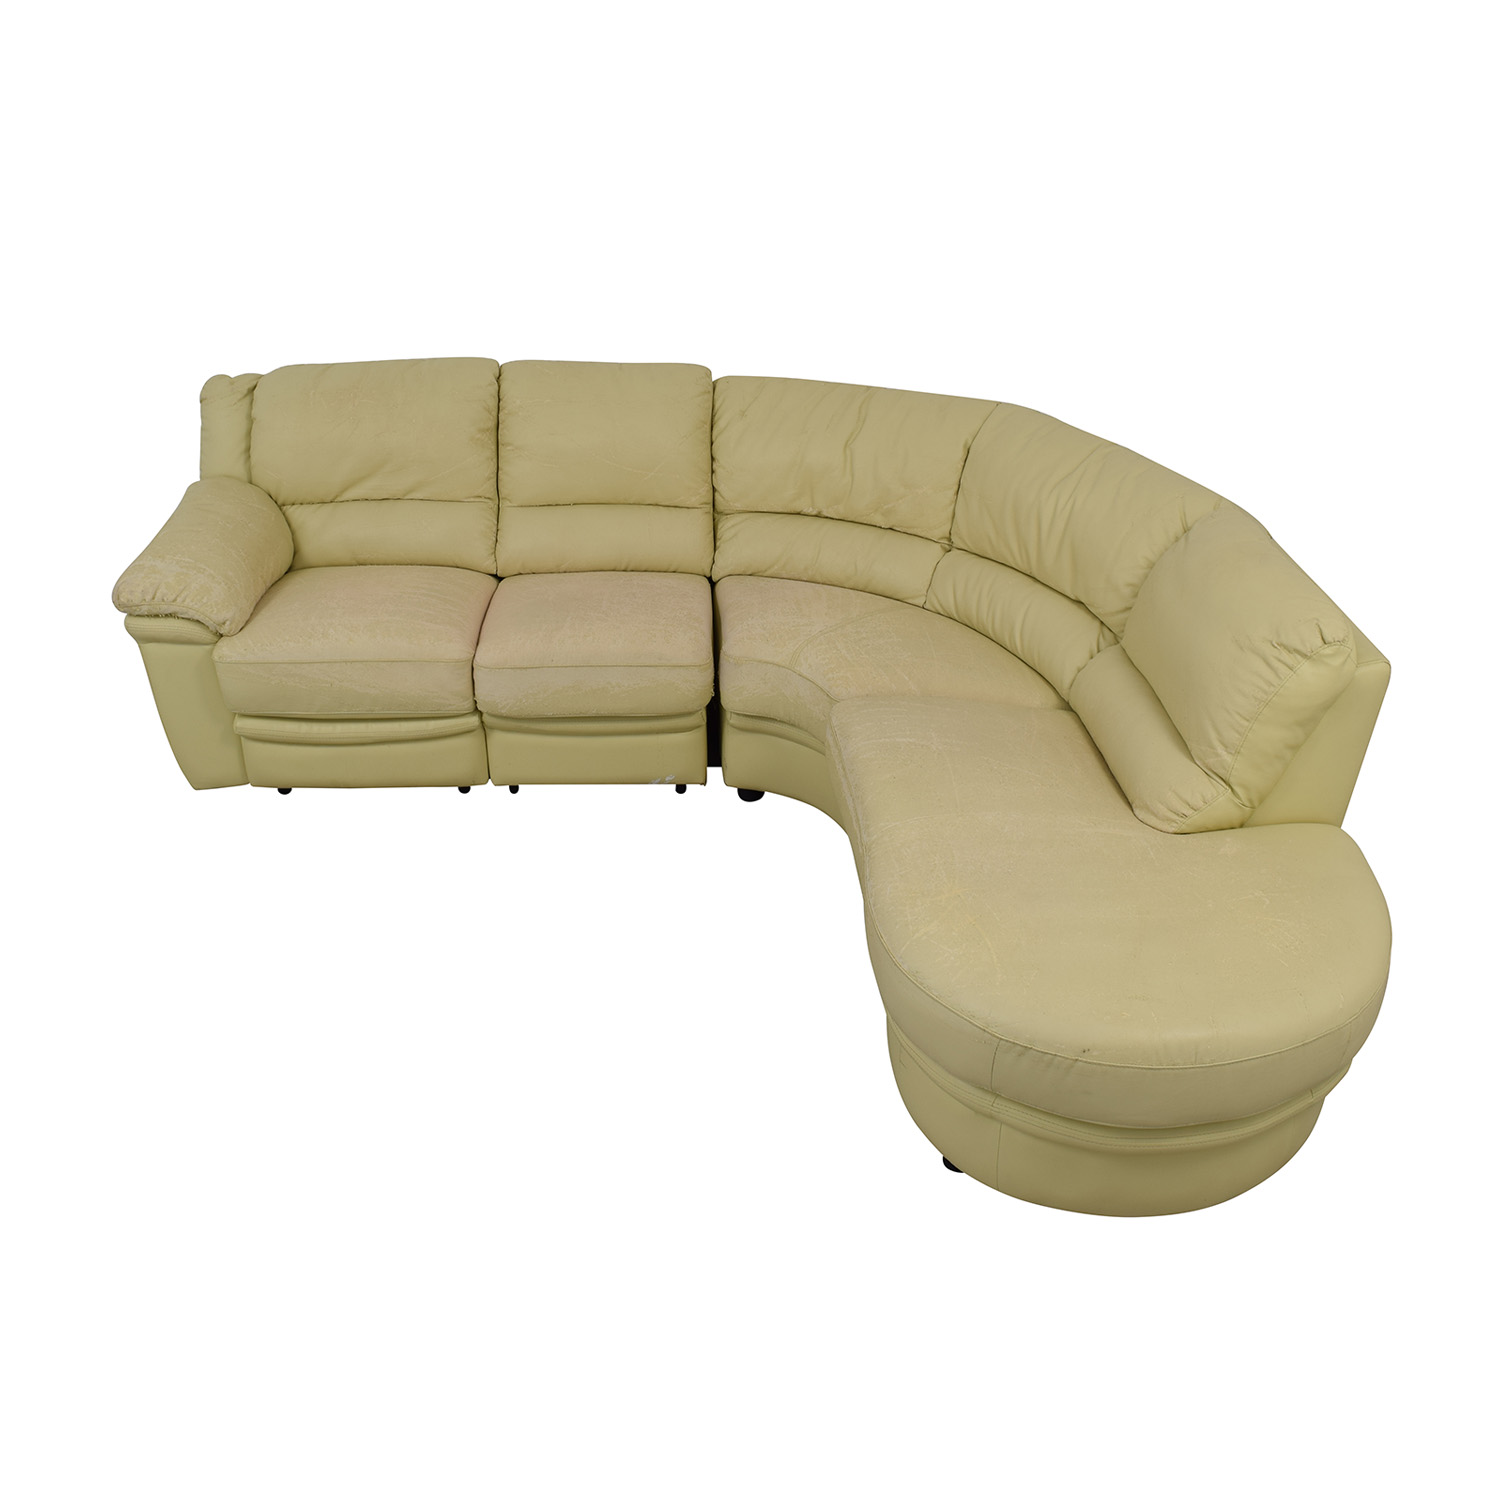 Beige L-Shaped One Reclining Chair Sectional nyc